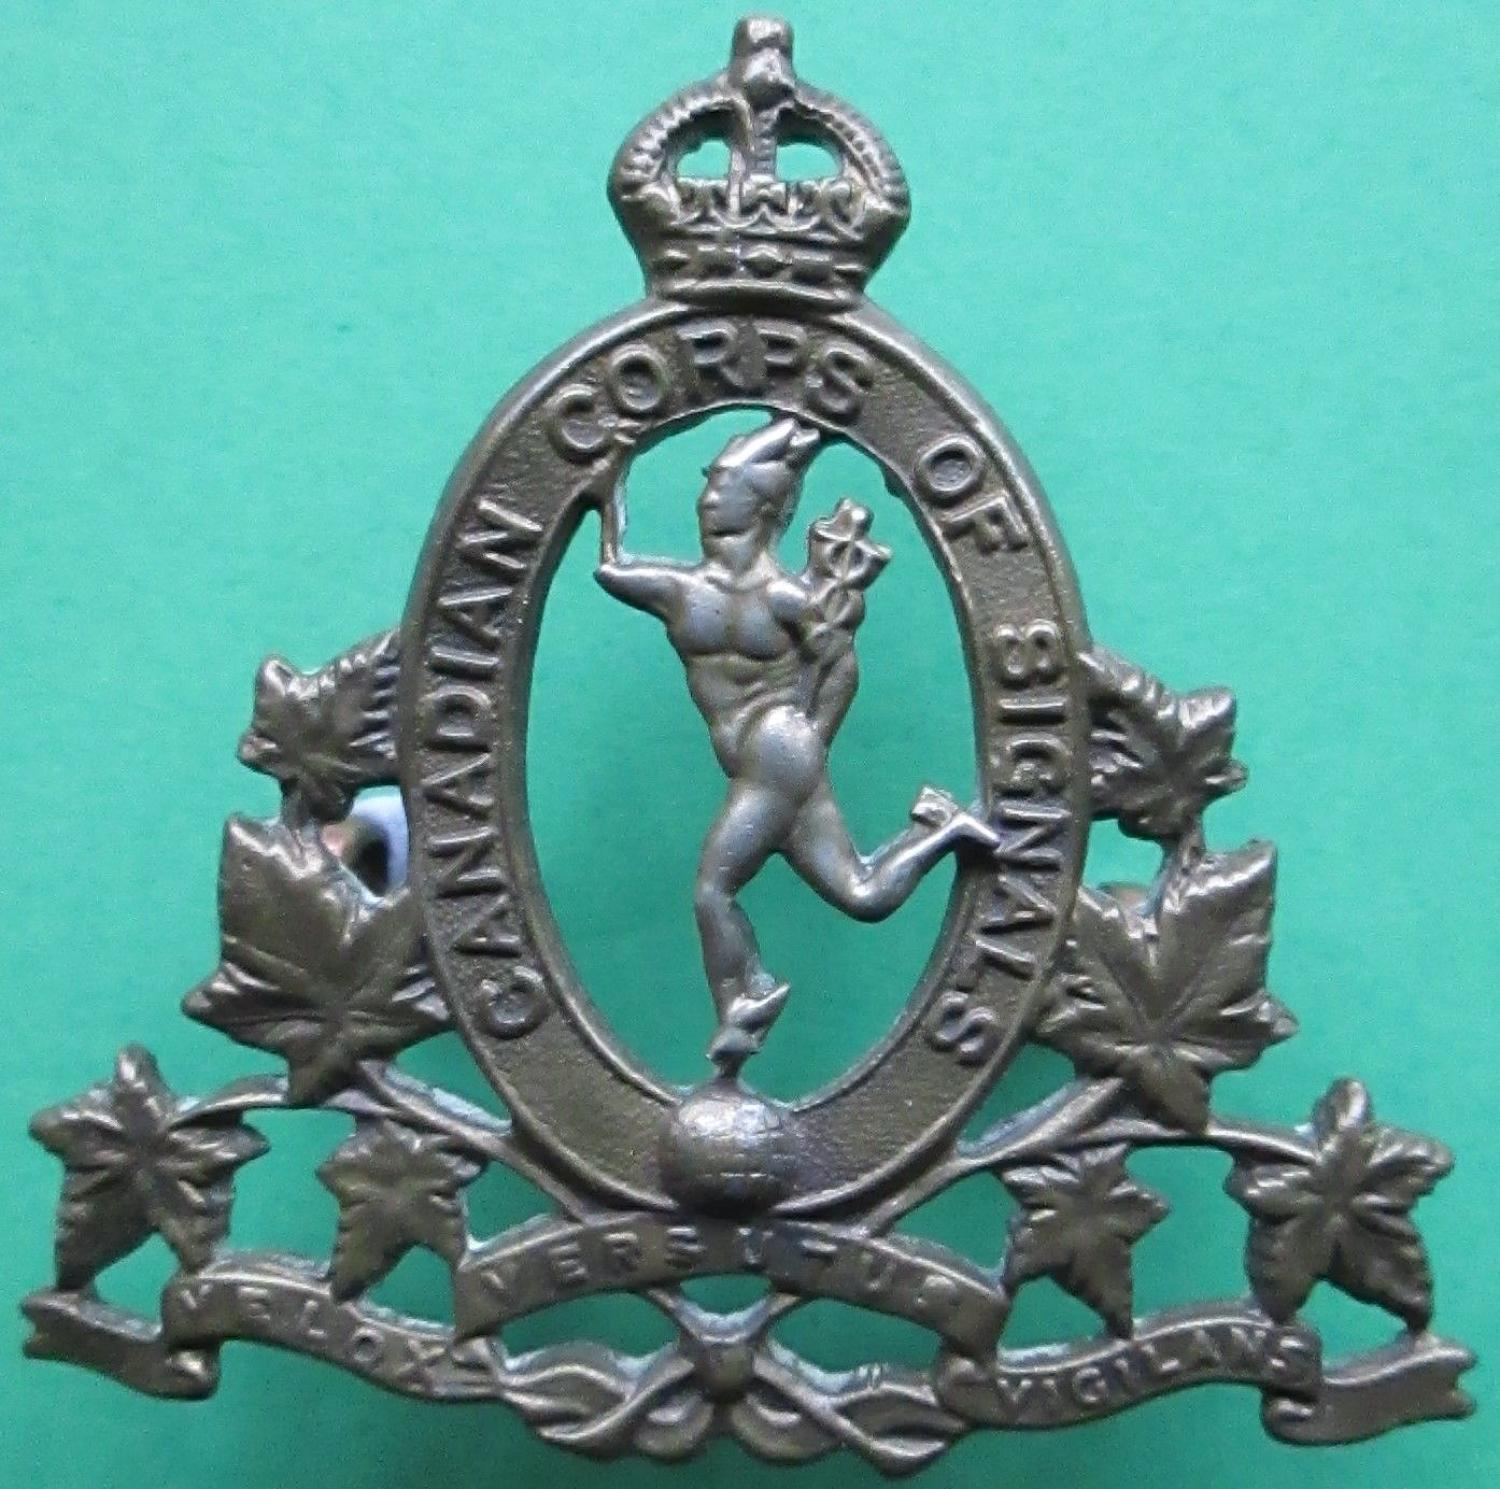 A CANADIAN CORPS OF SIGNALS BADGE